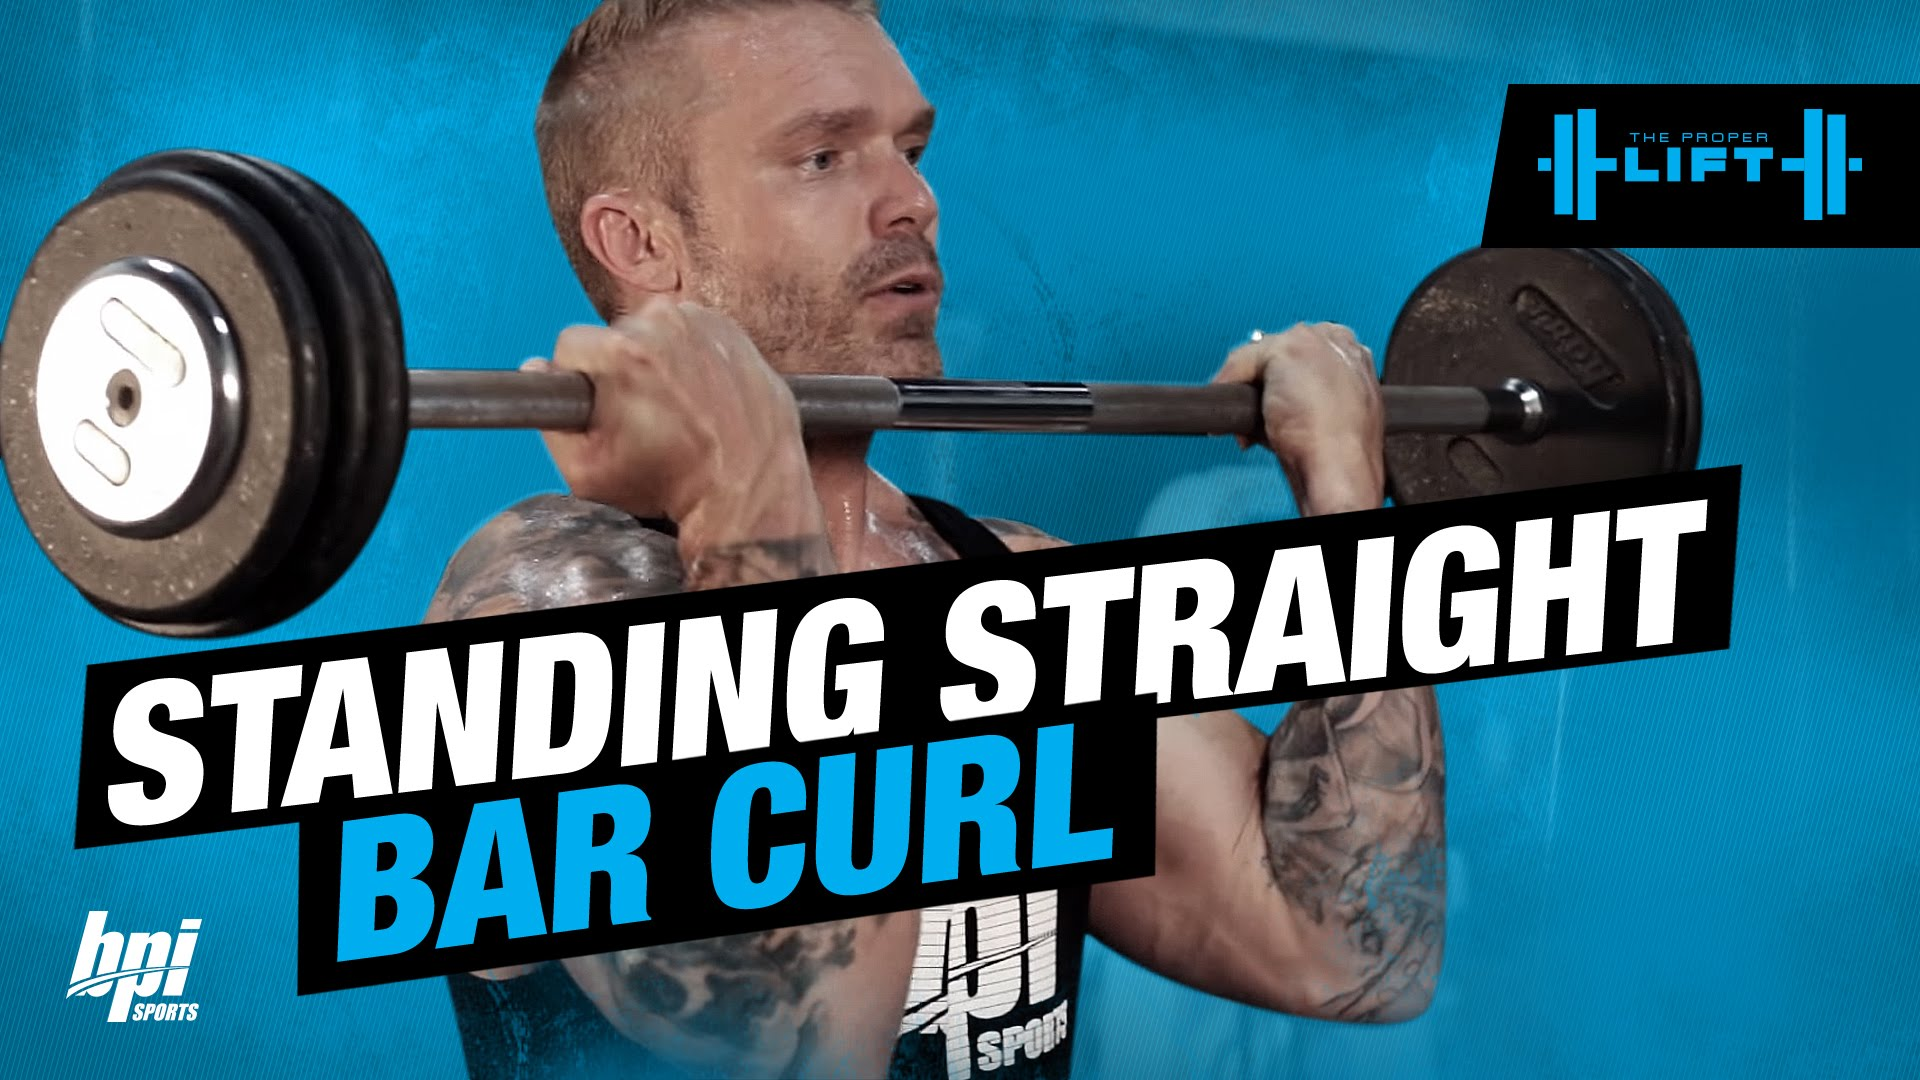 Straight-Bar-Bicep-Curl-Exercise-The-Proper-Lift-BPI-Sports-1